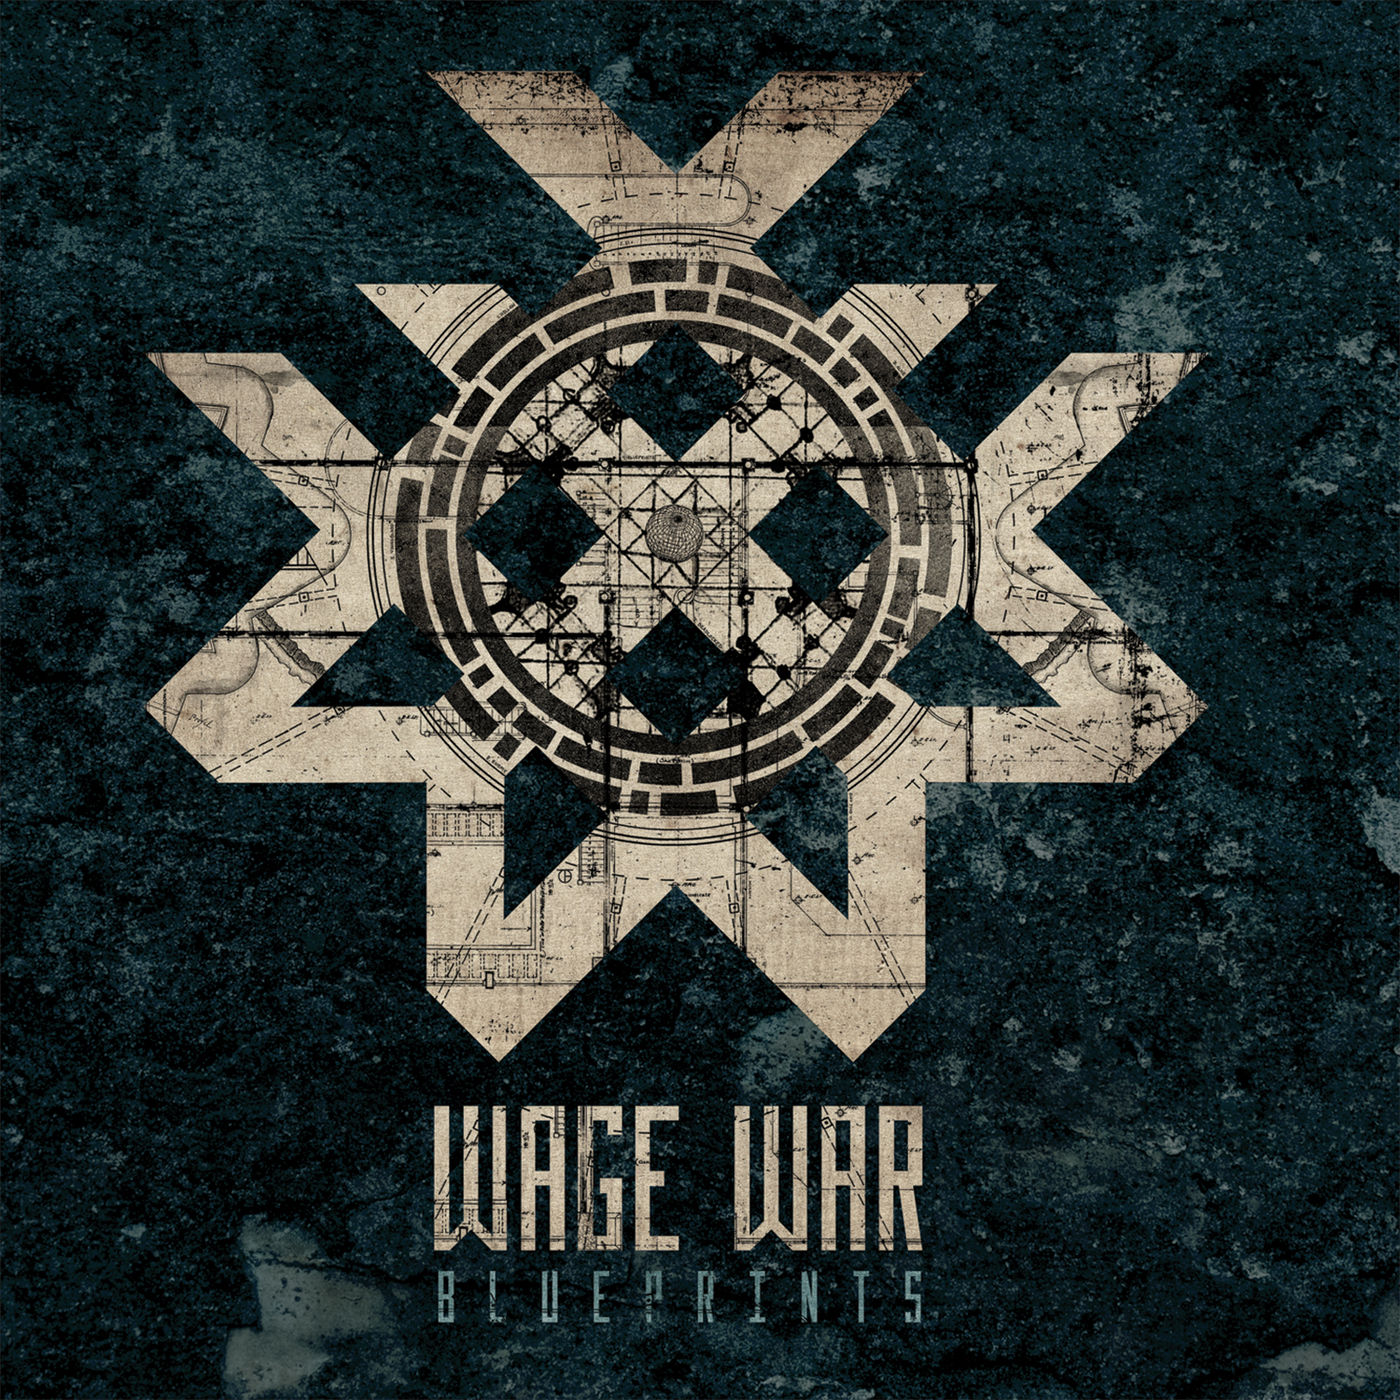 Wage war blueprints 2015 core radio wage war blueprints 2015 malvernweather Images